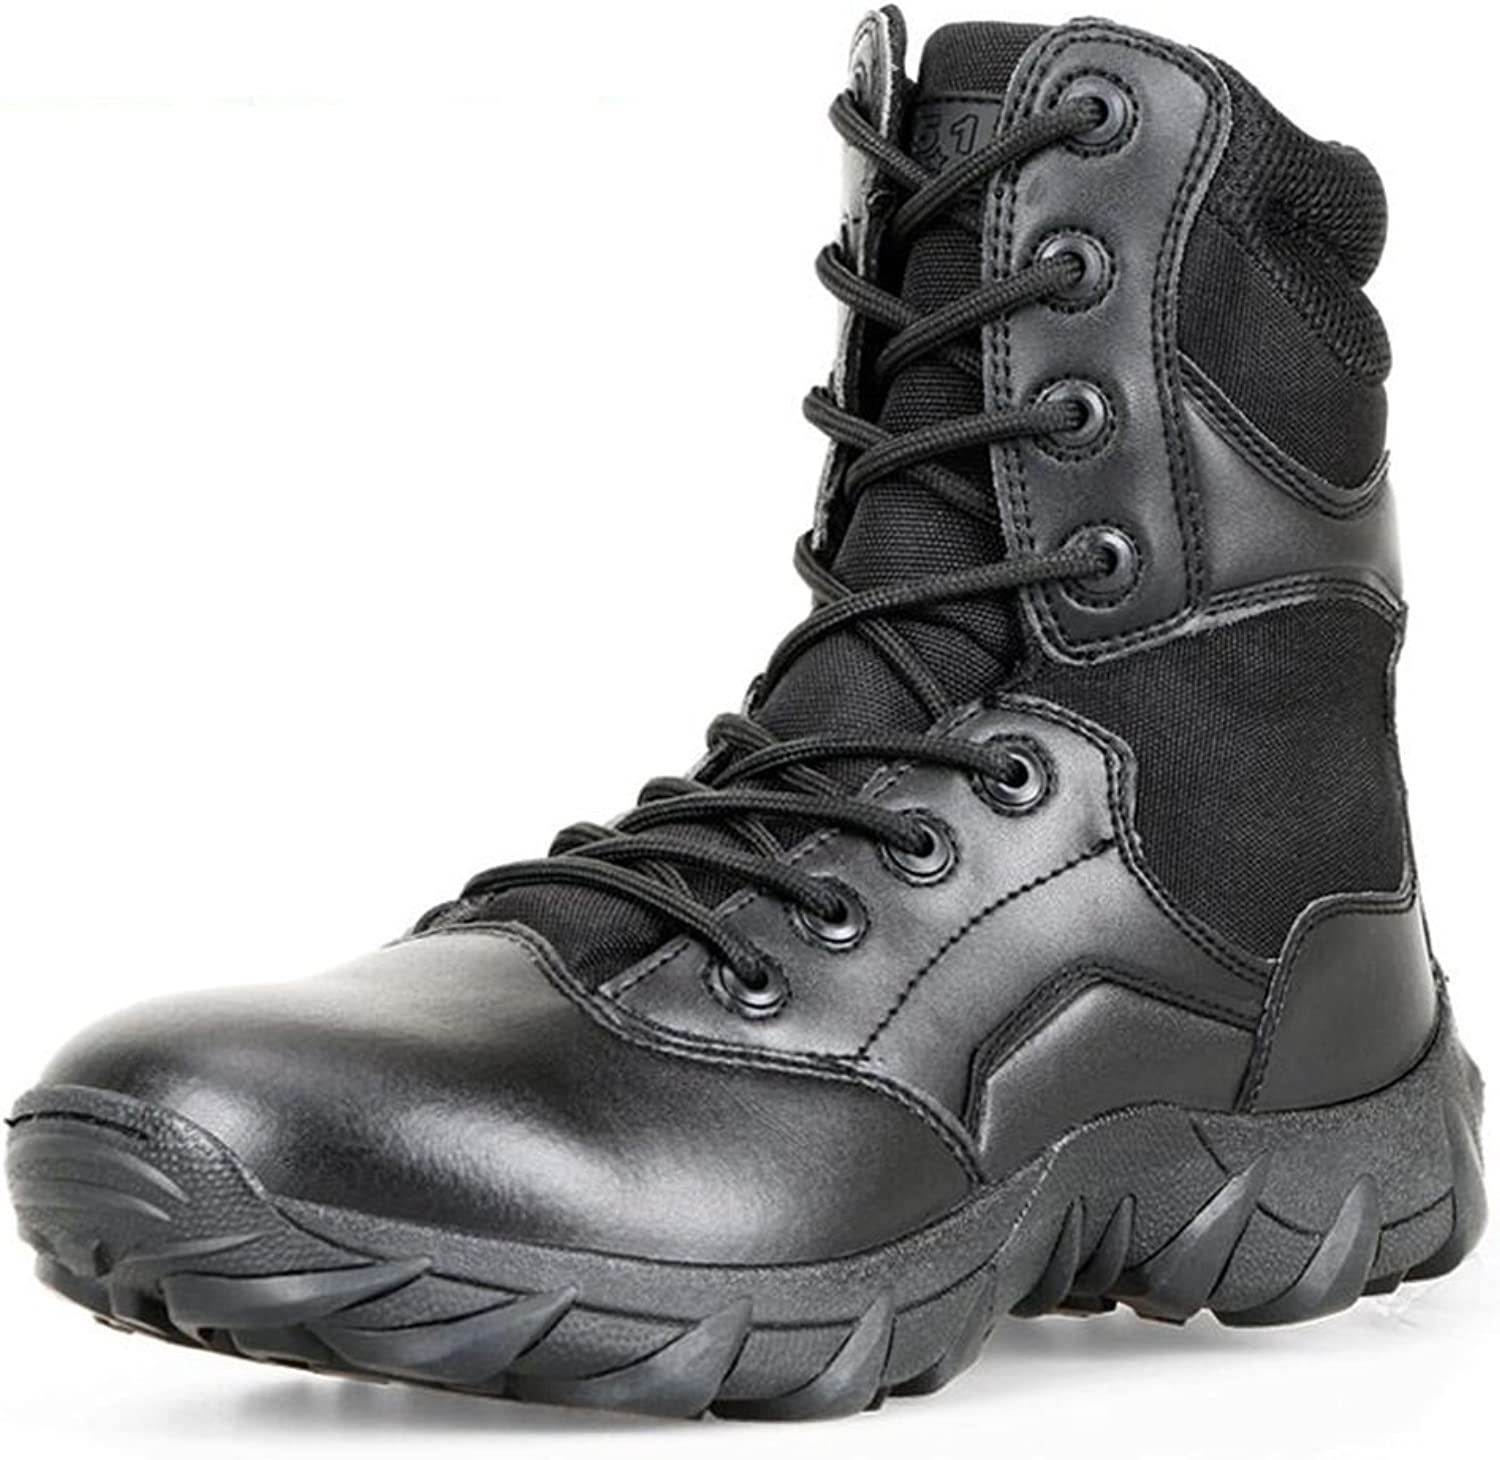 SUNNY American PU Boots Desert Boots Outdoor Boots Tooling Boots Black Safety (Size   EU39 UK6.5 CN40)